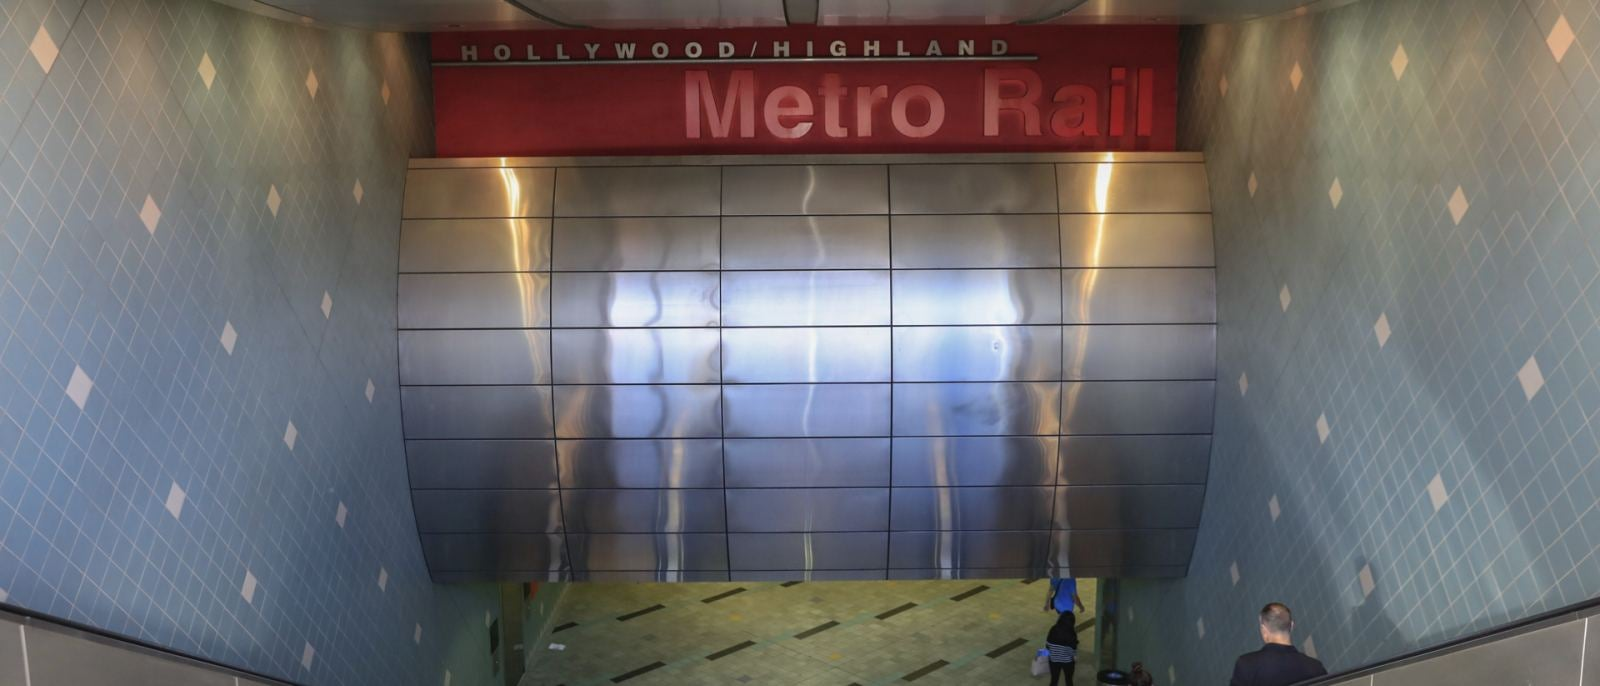 Metro Station at Hollywood and Highland